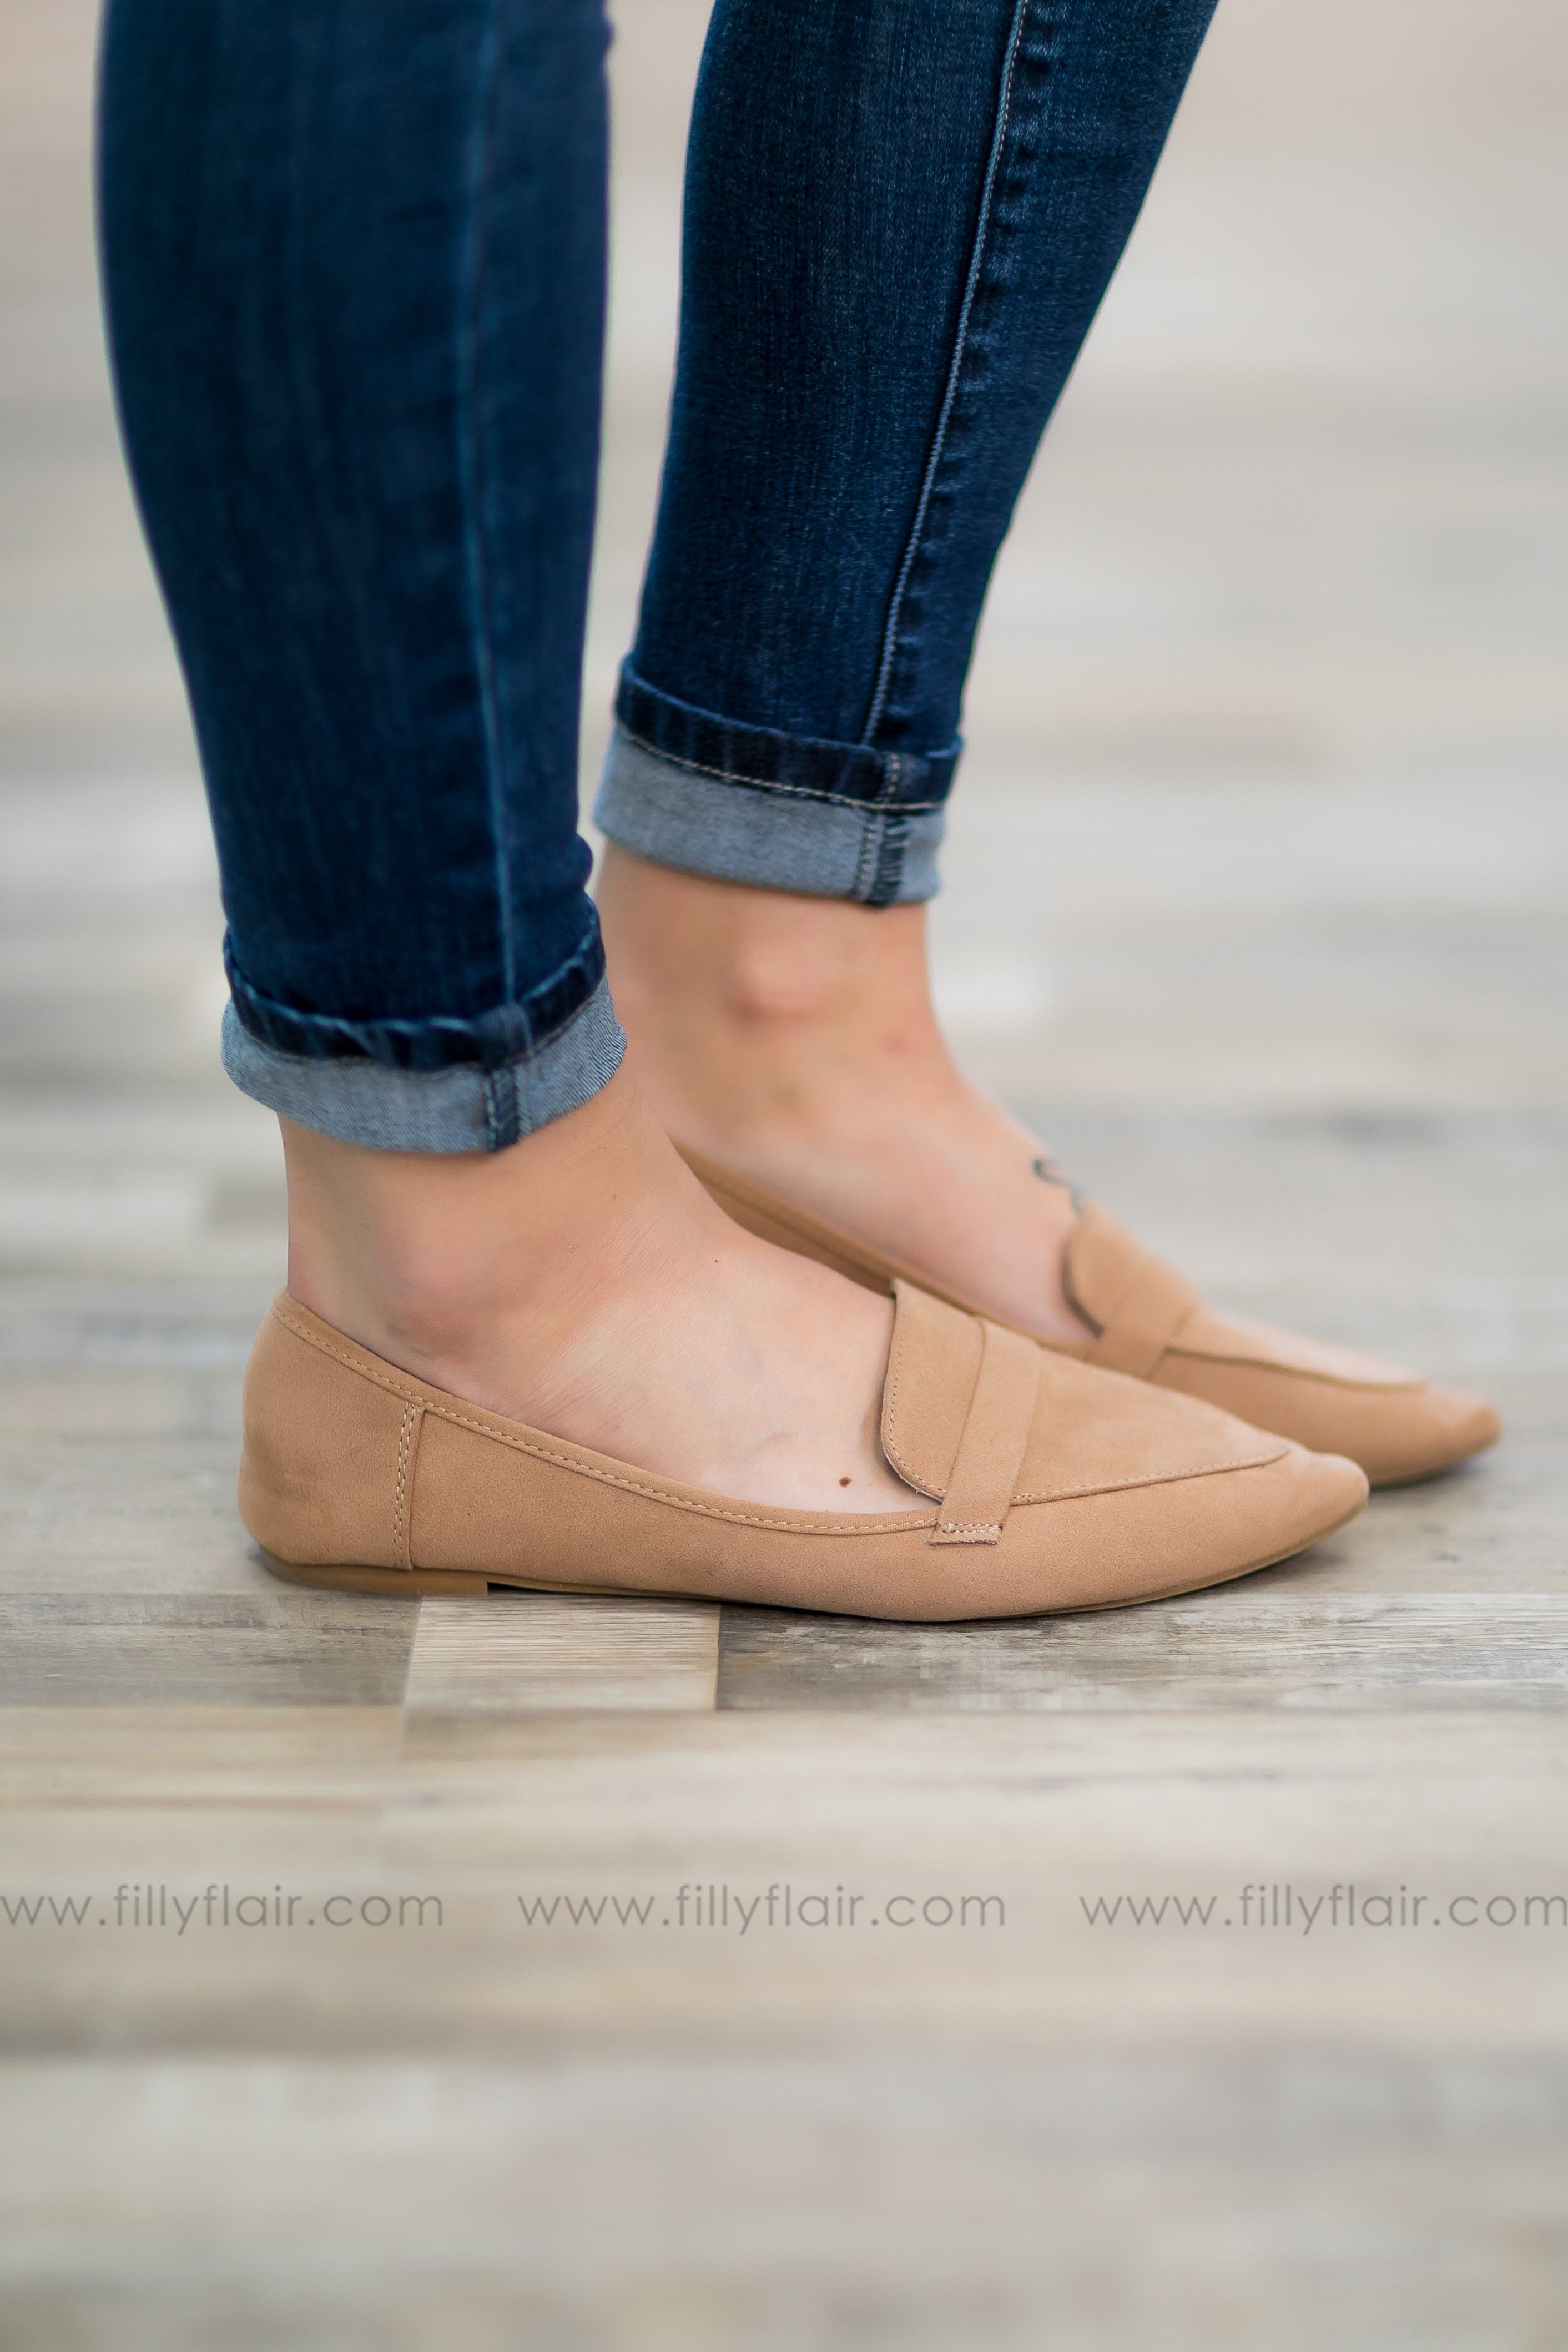 Take A Step Slip on Flats in Light Camel - Filly Flair